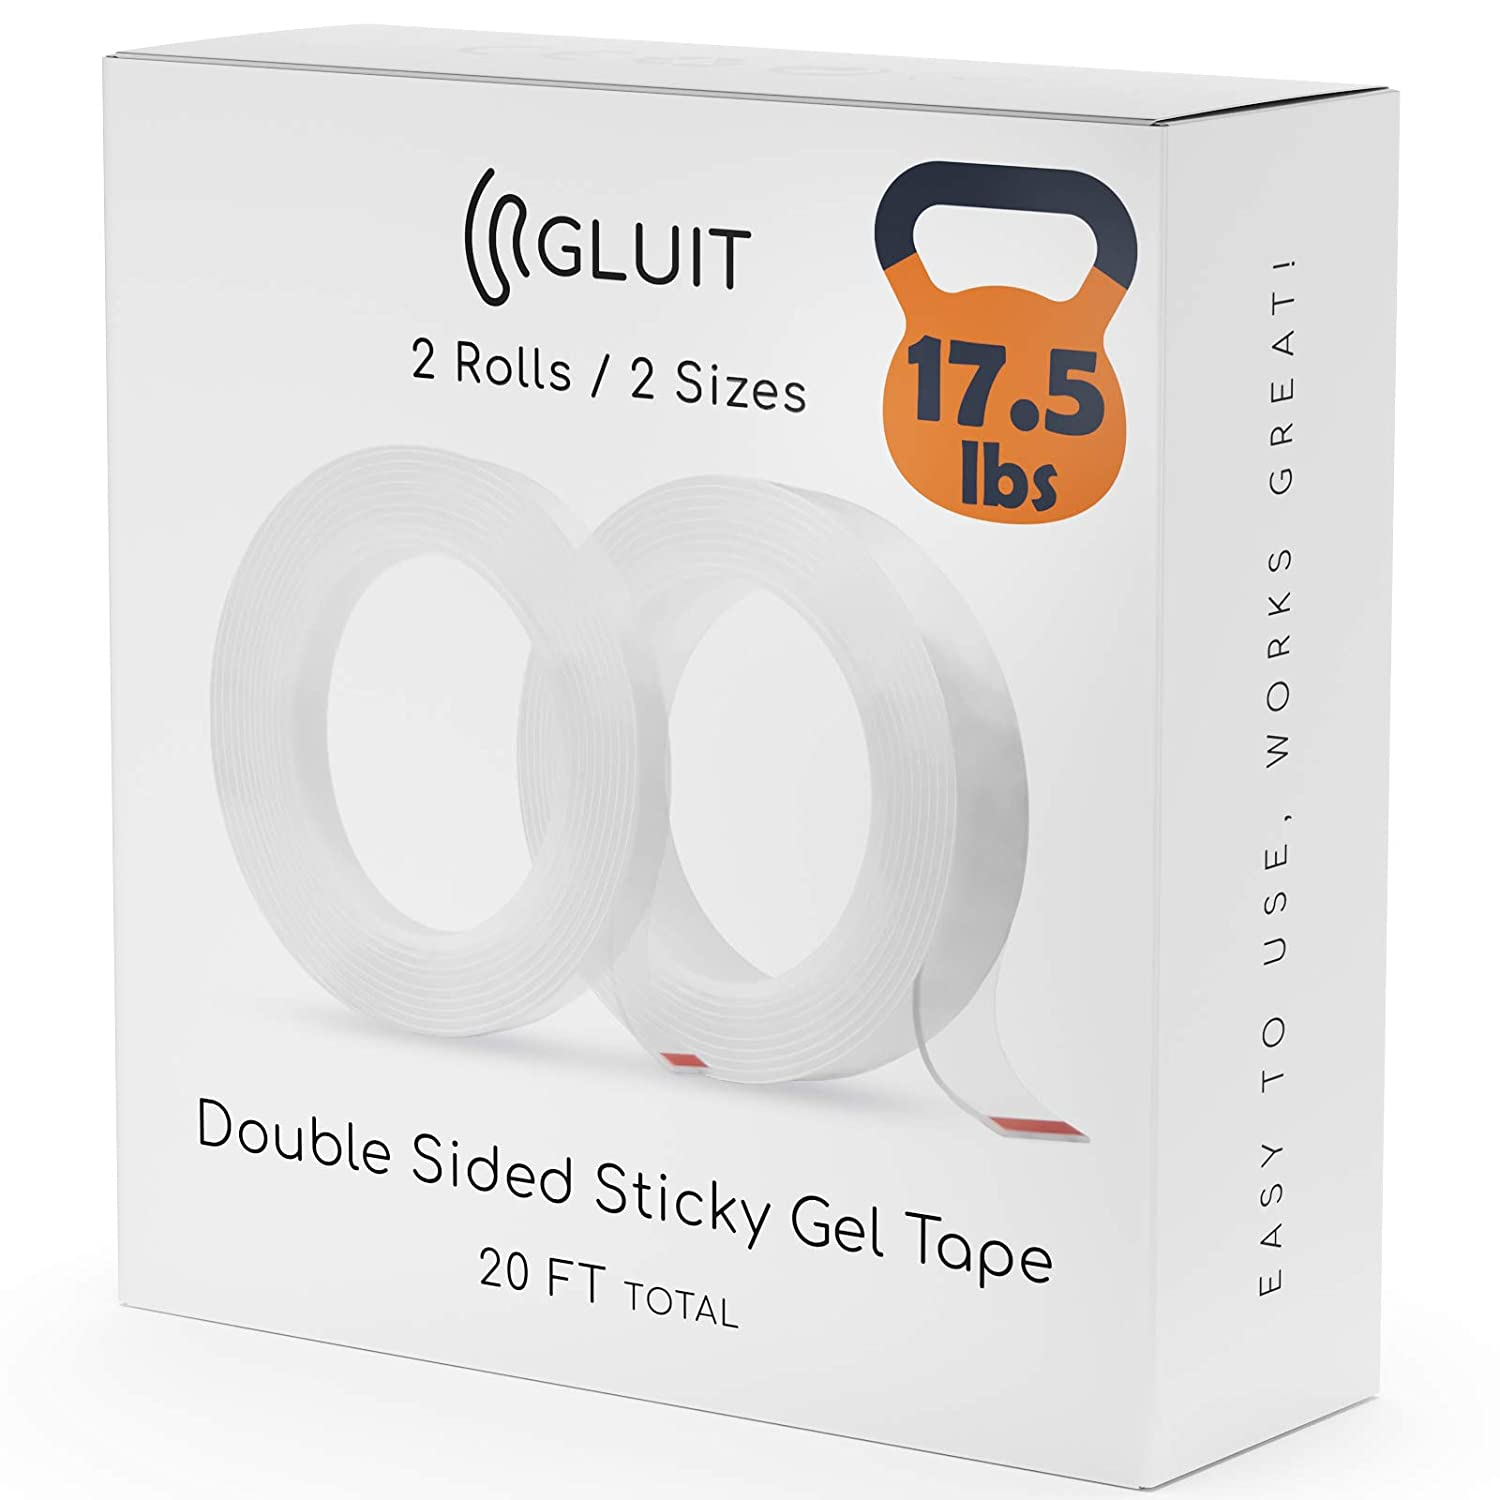 GLUIT Premium Double Sided Tape Heavy Duty 17.5 lbs Reusable Adhesive Removable Washable Multipurpose Mounting Tape Gel Grip Tape Carpet Tape for Home Office Kitchen Car Poster 2 Rolls 20 FT